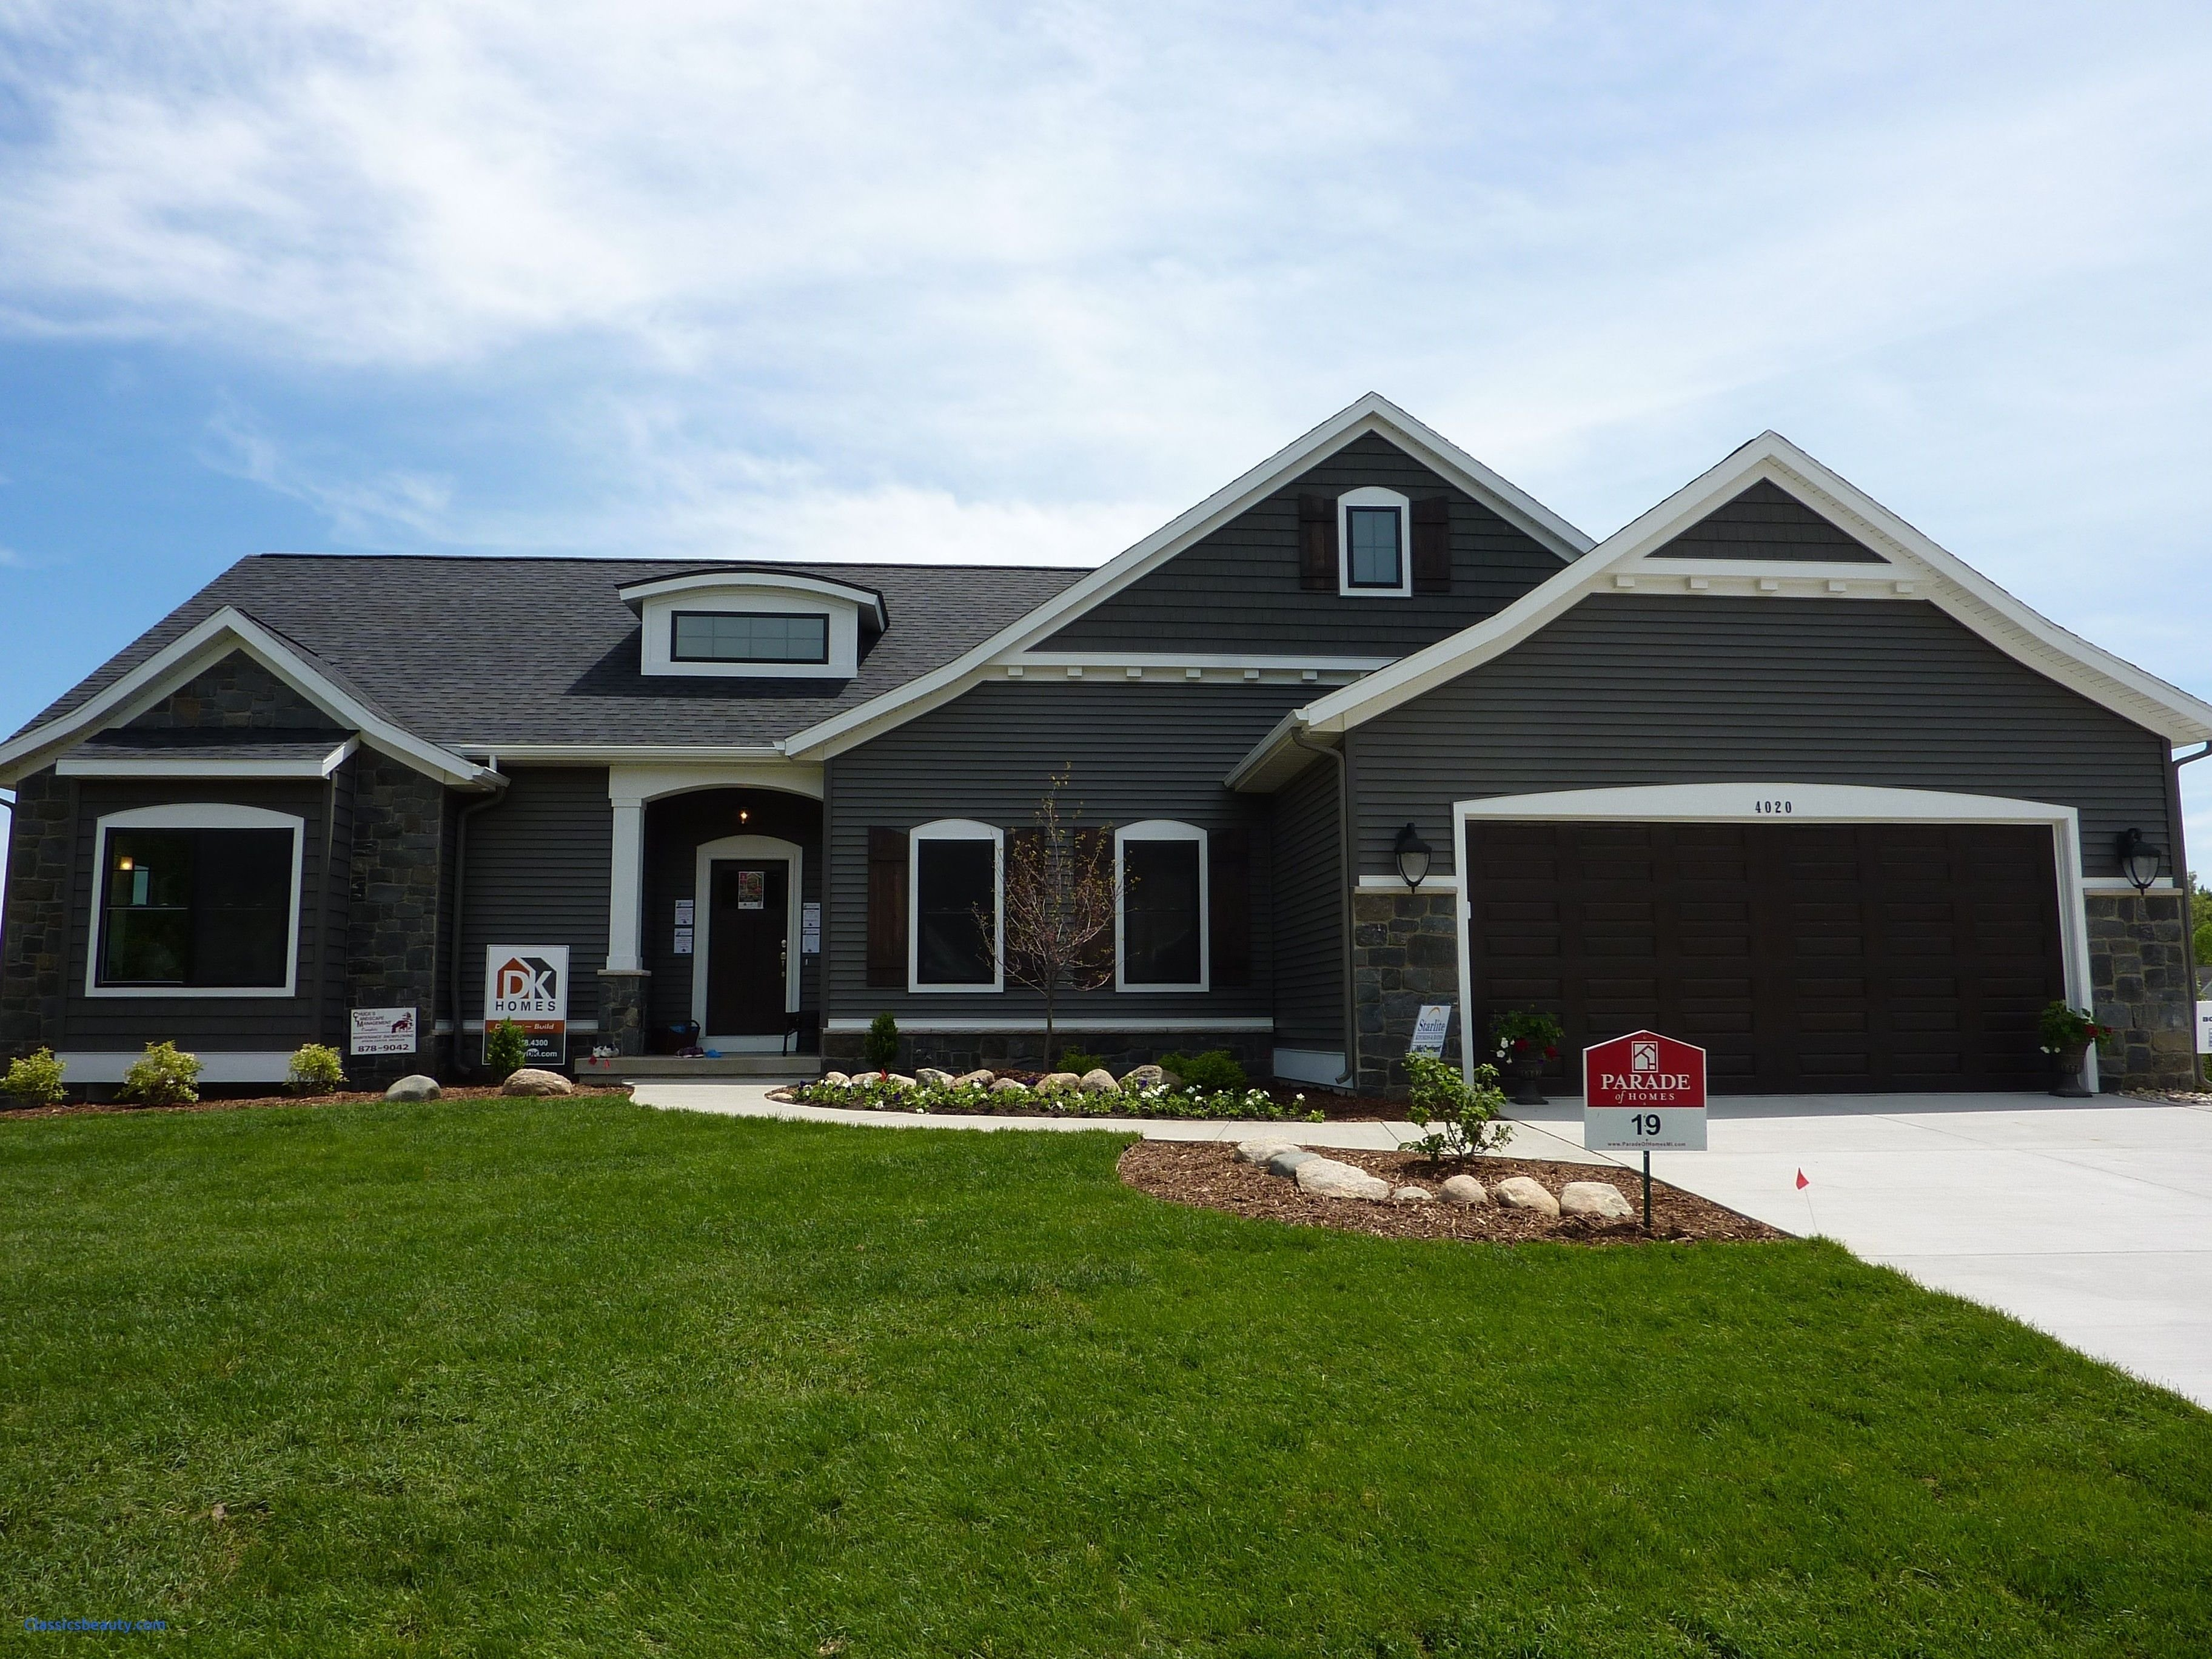 10 Best Exterior Paint Ideas For Ranch Style Homes exterior paint color ideas for ranch style homes home exterior color